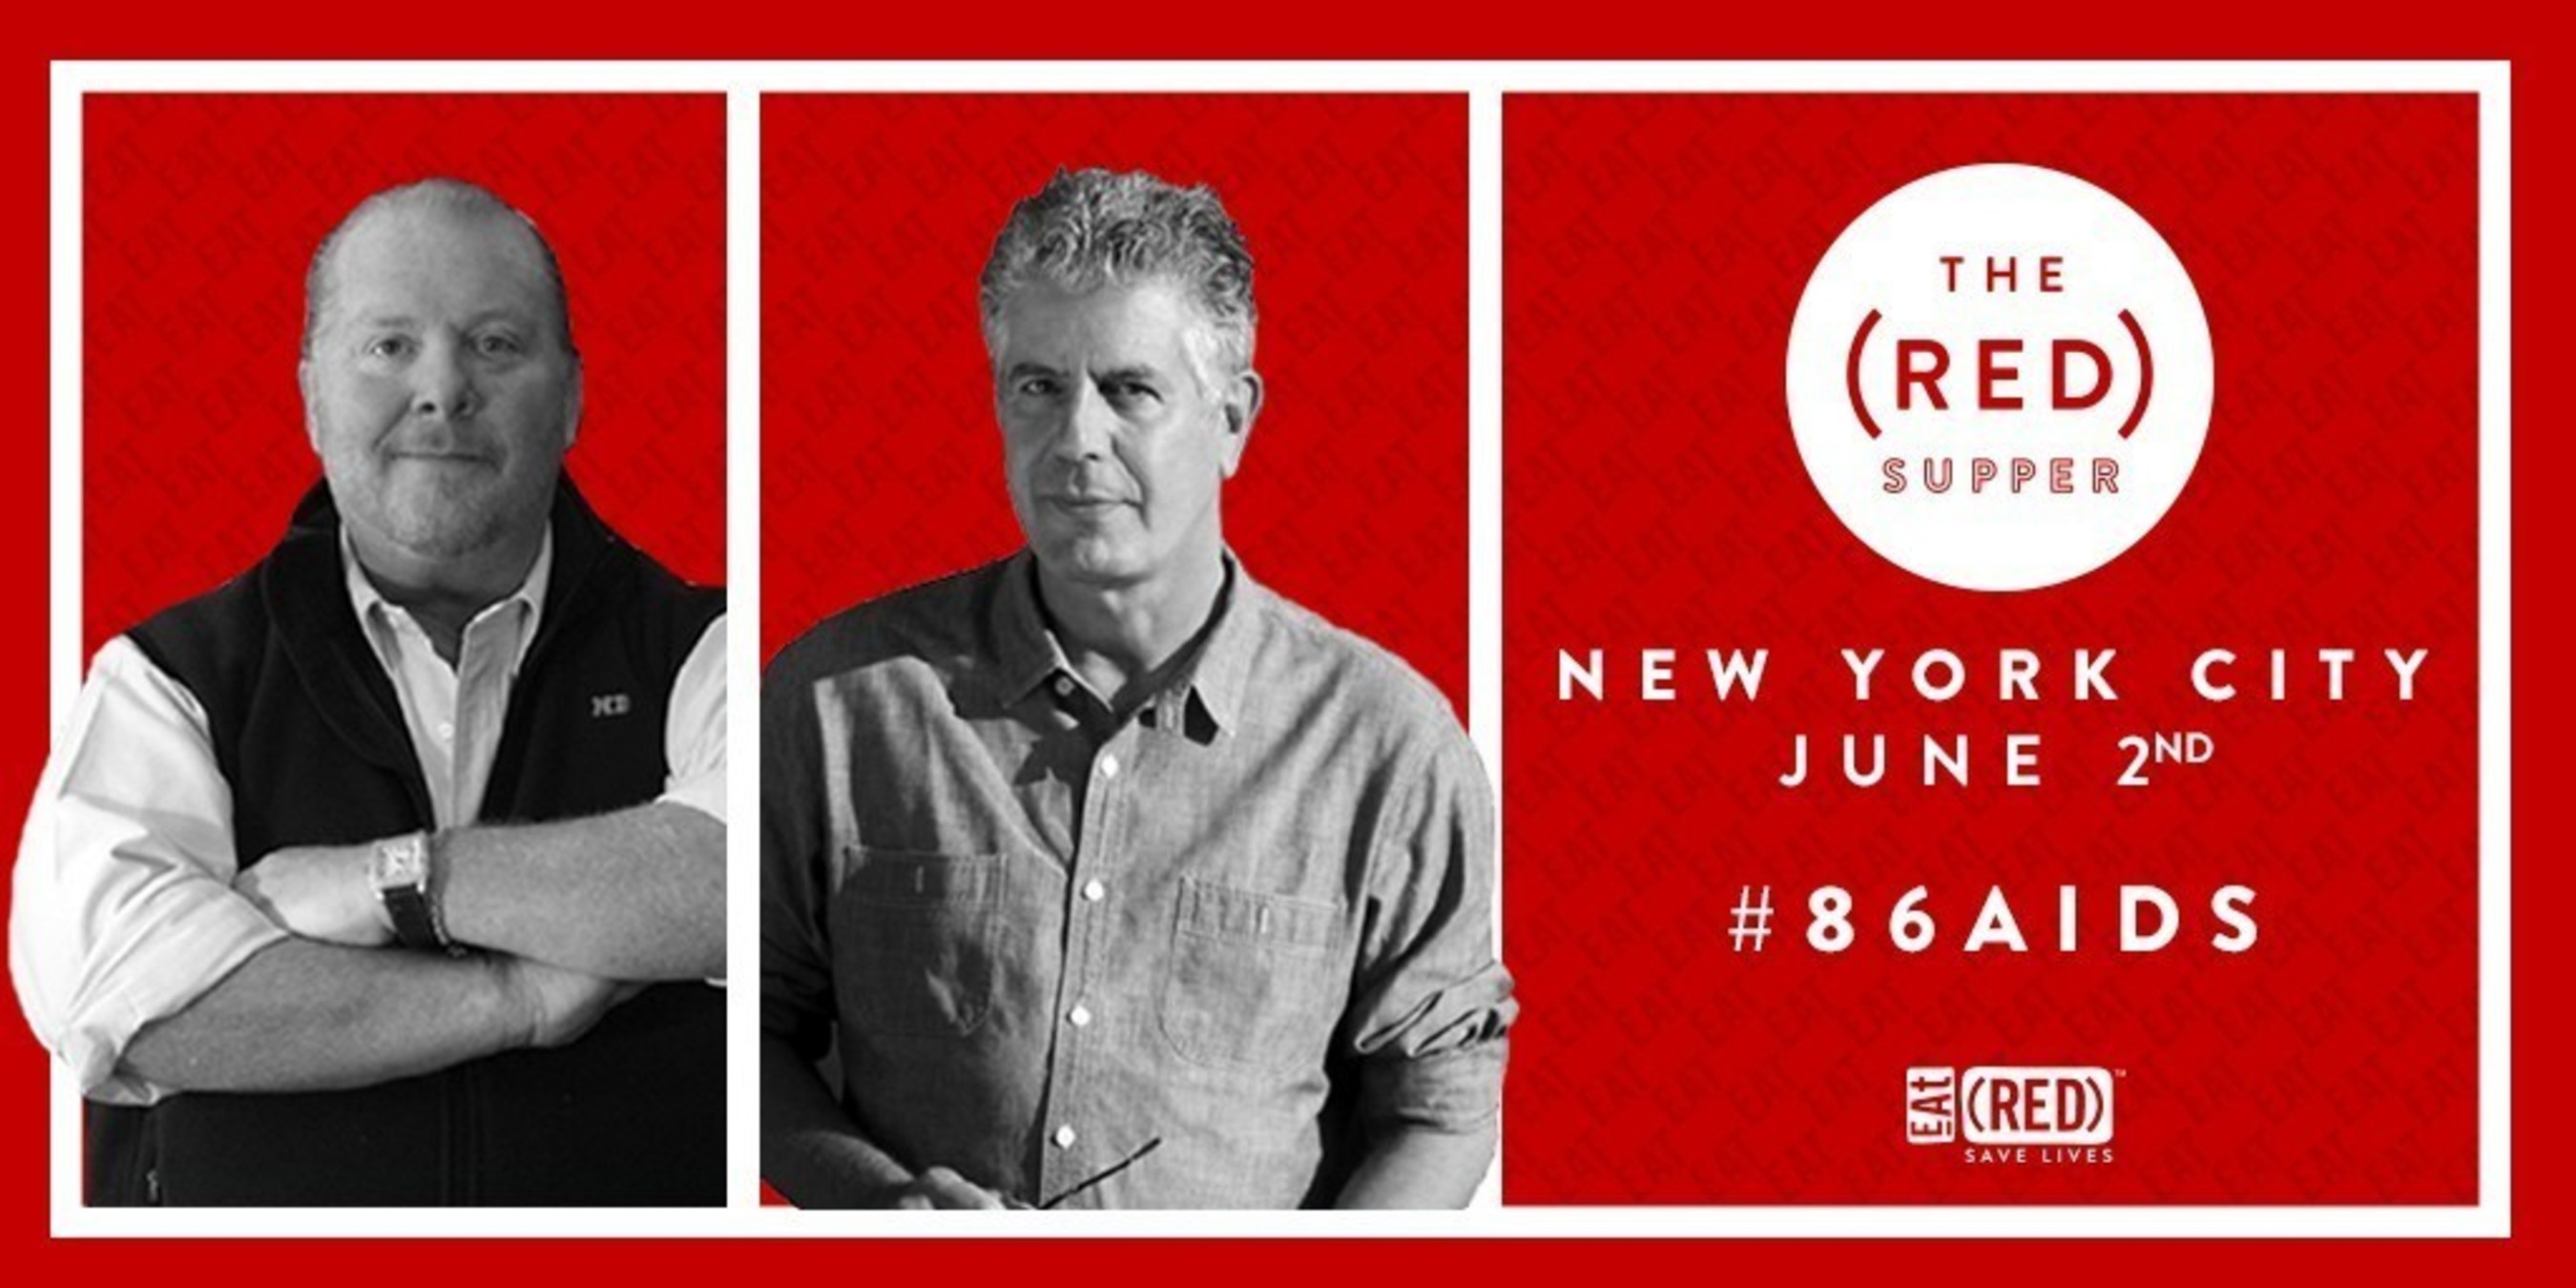 Host Mario Batali And Co-Host Anthony Bourdain Invite New Yorkers To The Table In The Fight To #86AIDS At June 2nd (RED) Supper Event